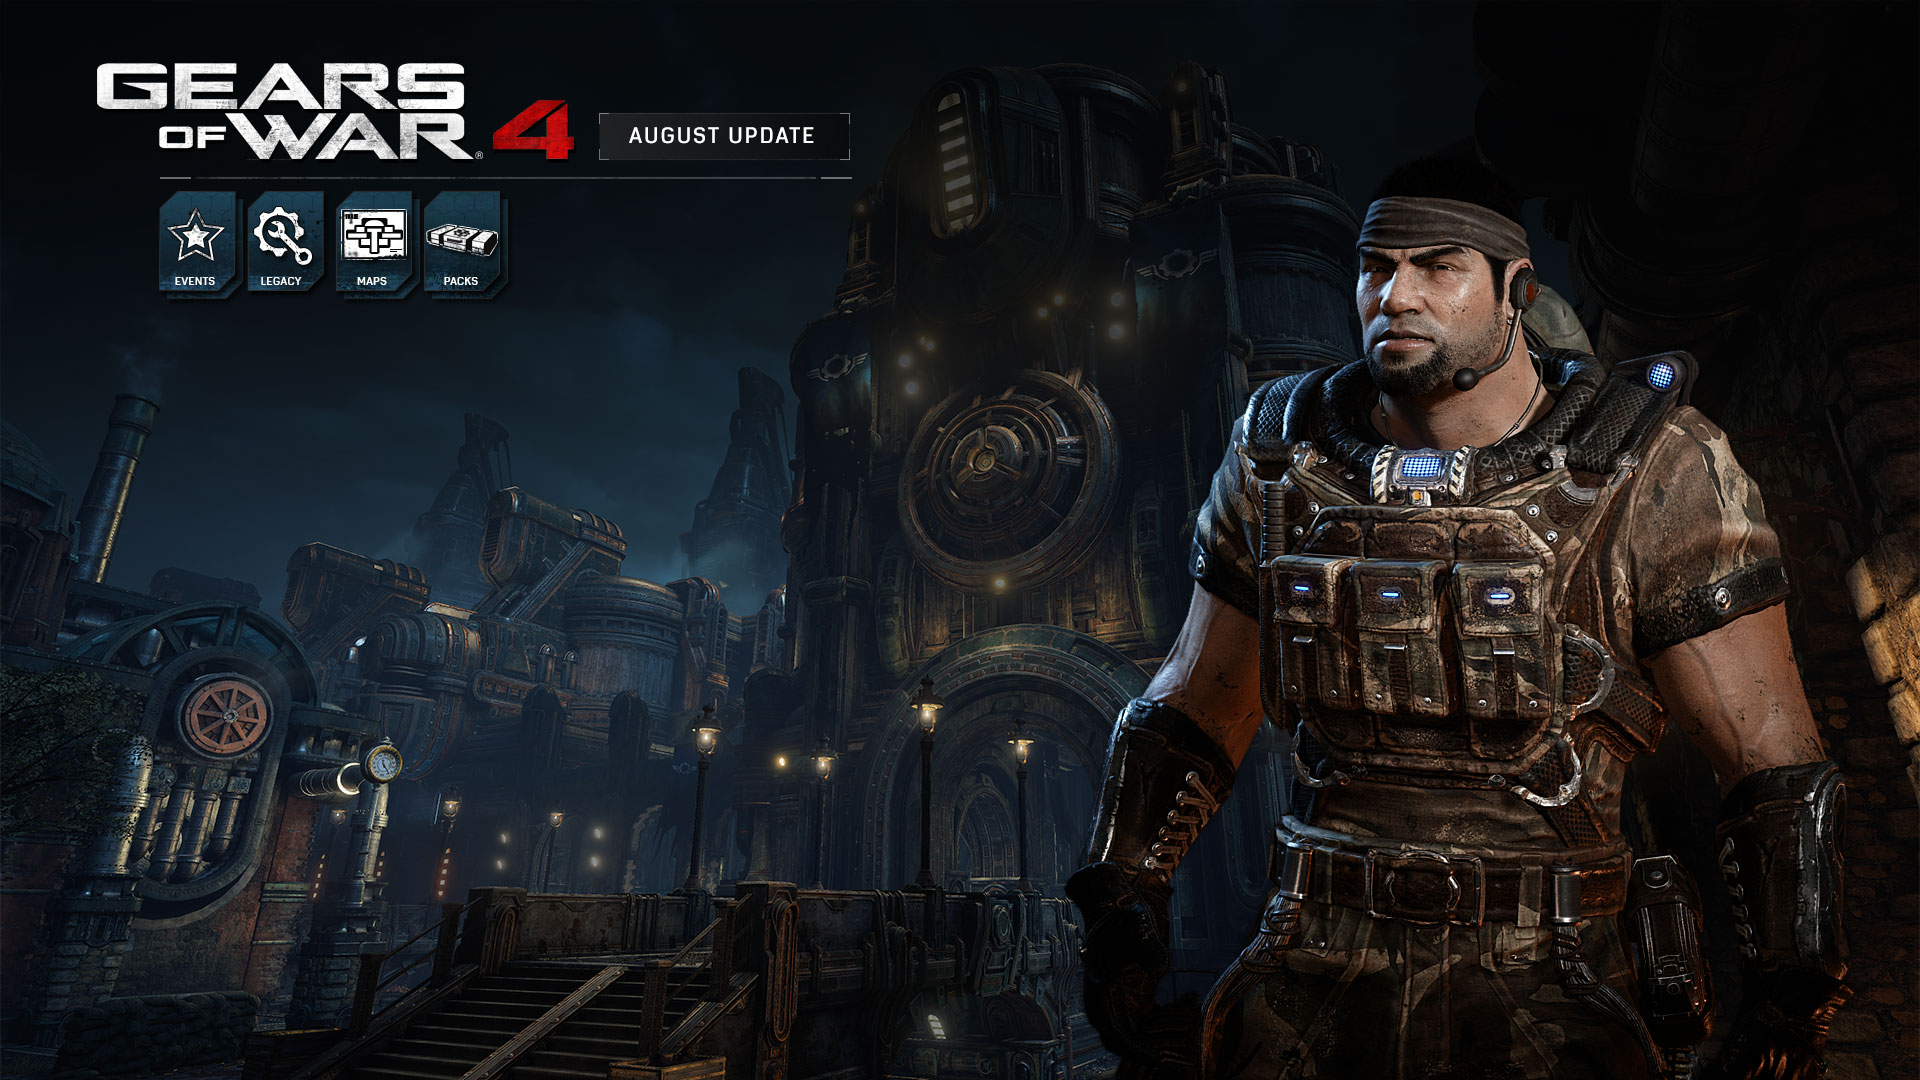 Gears of war 4 pc matchmaking not working